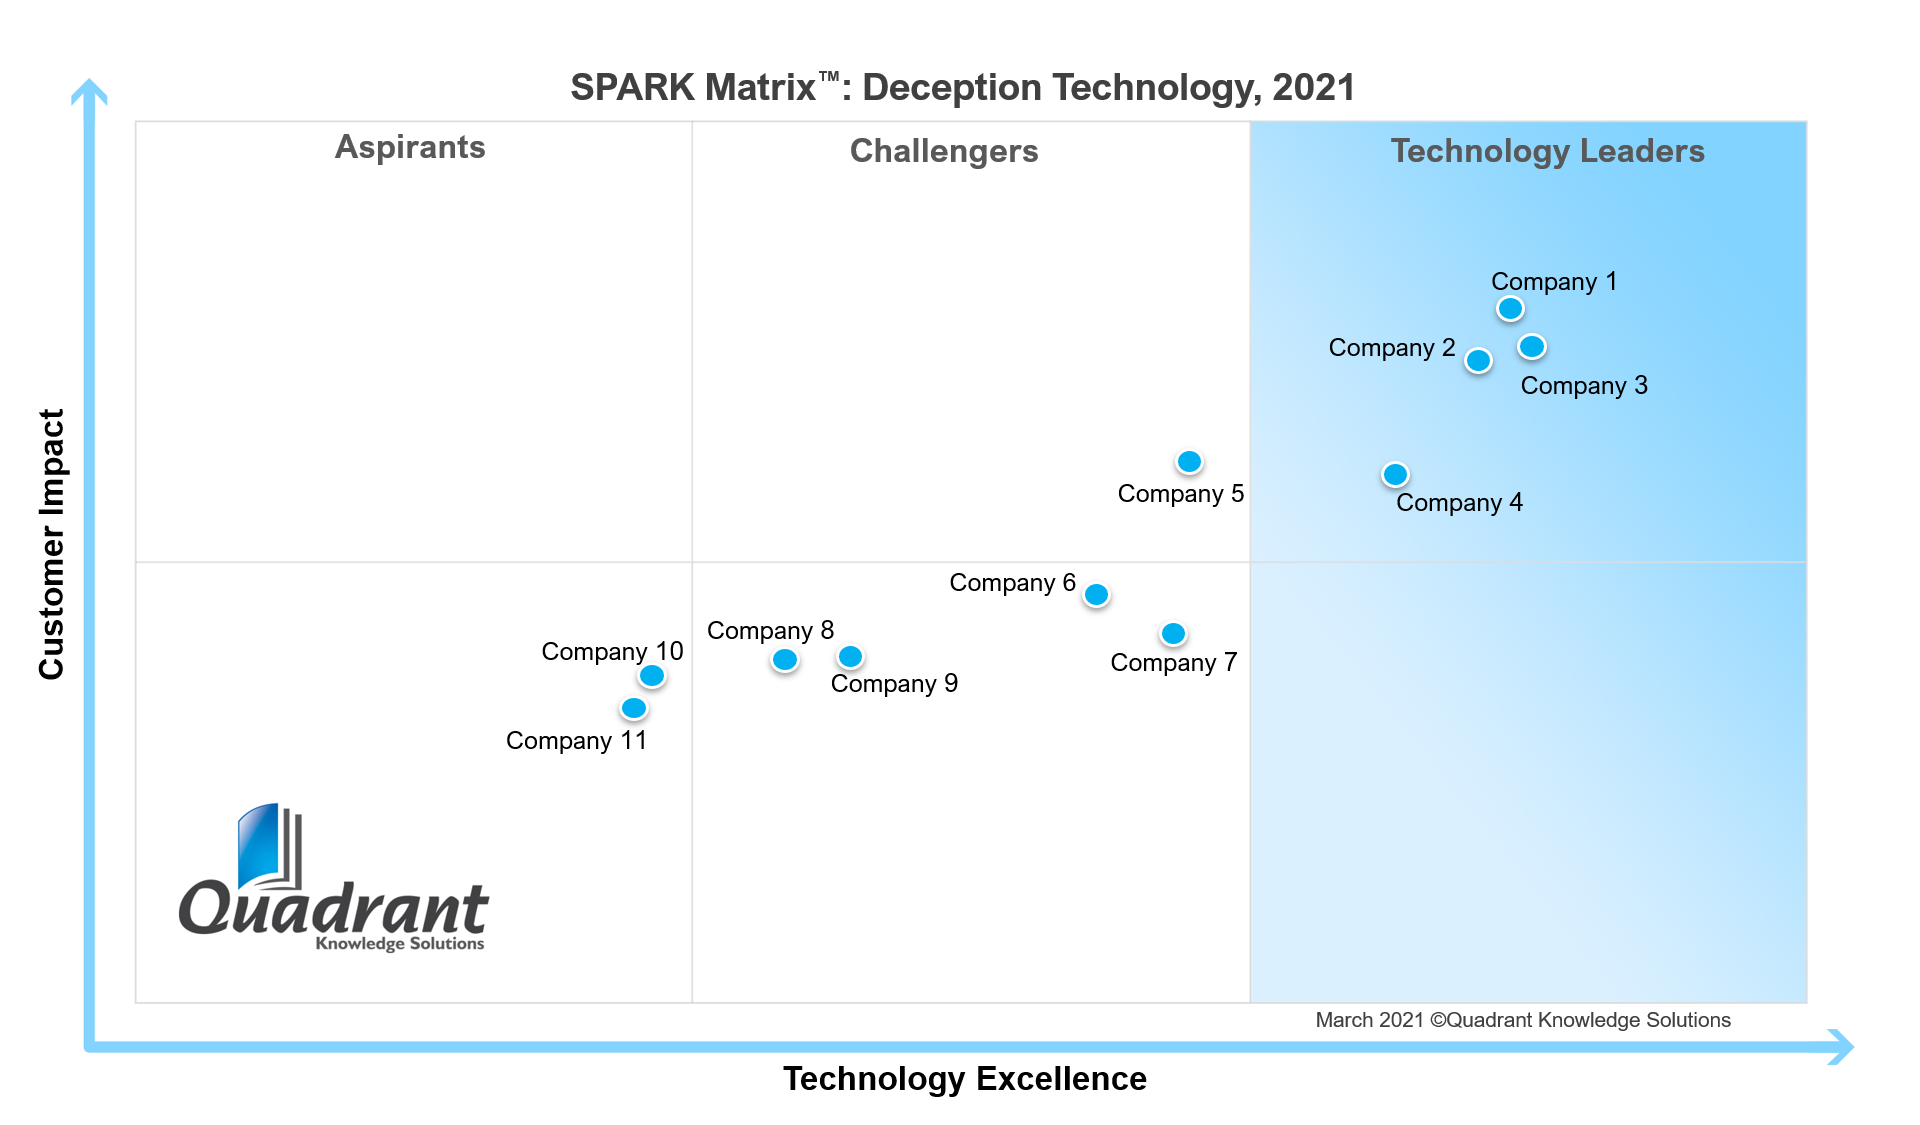 SPARK Matrix_Deception Technology_2021